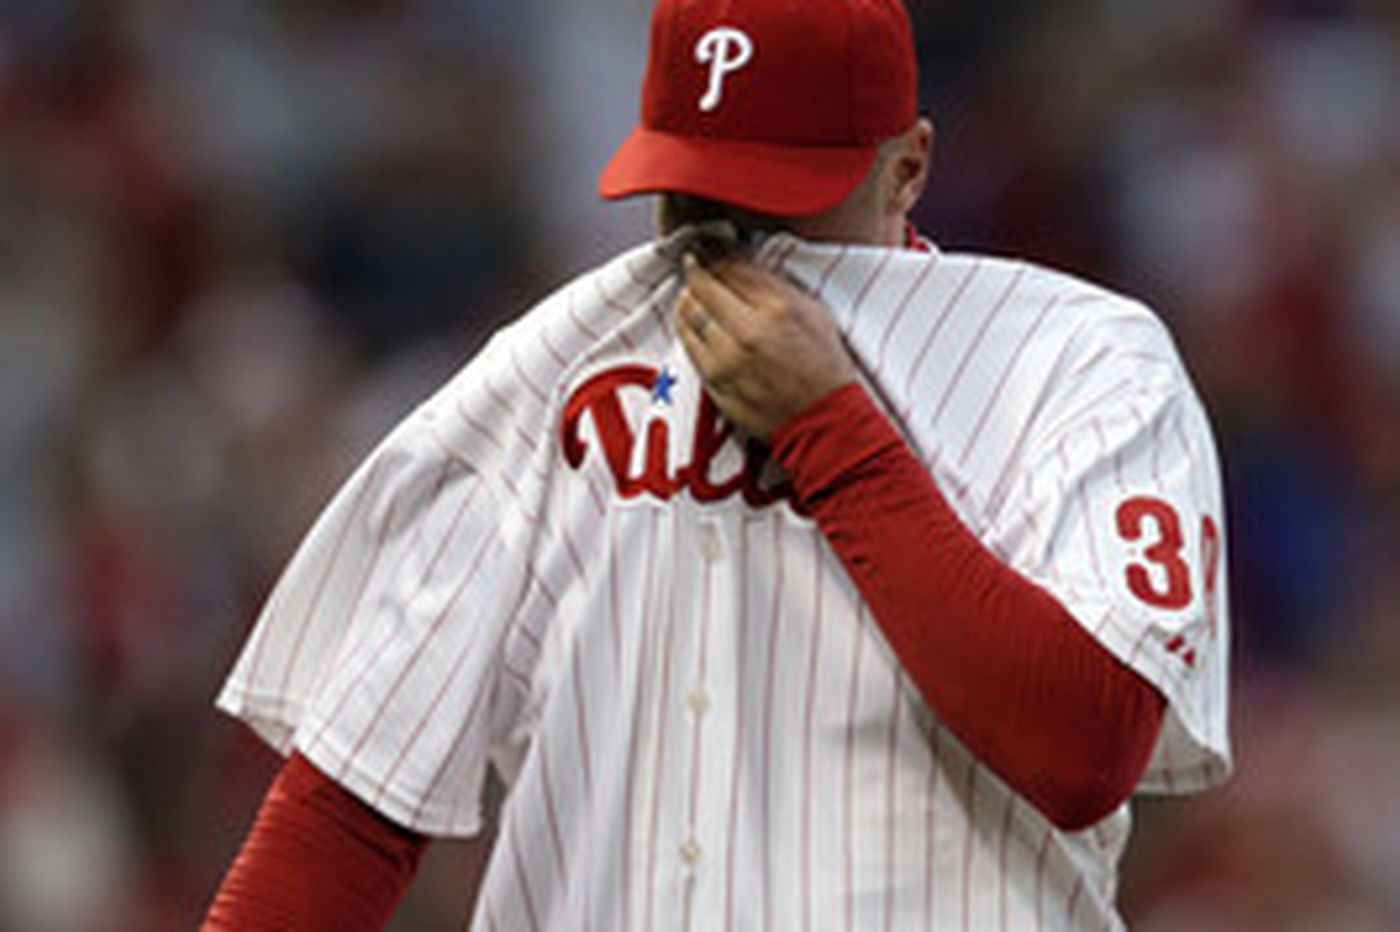 Victorino's grand slam secures Phillies victory in Game 2 of NLDS